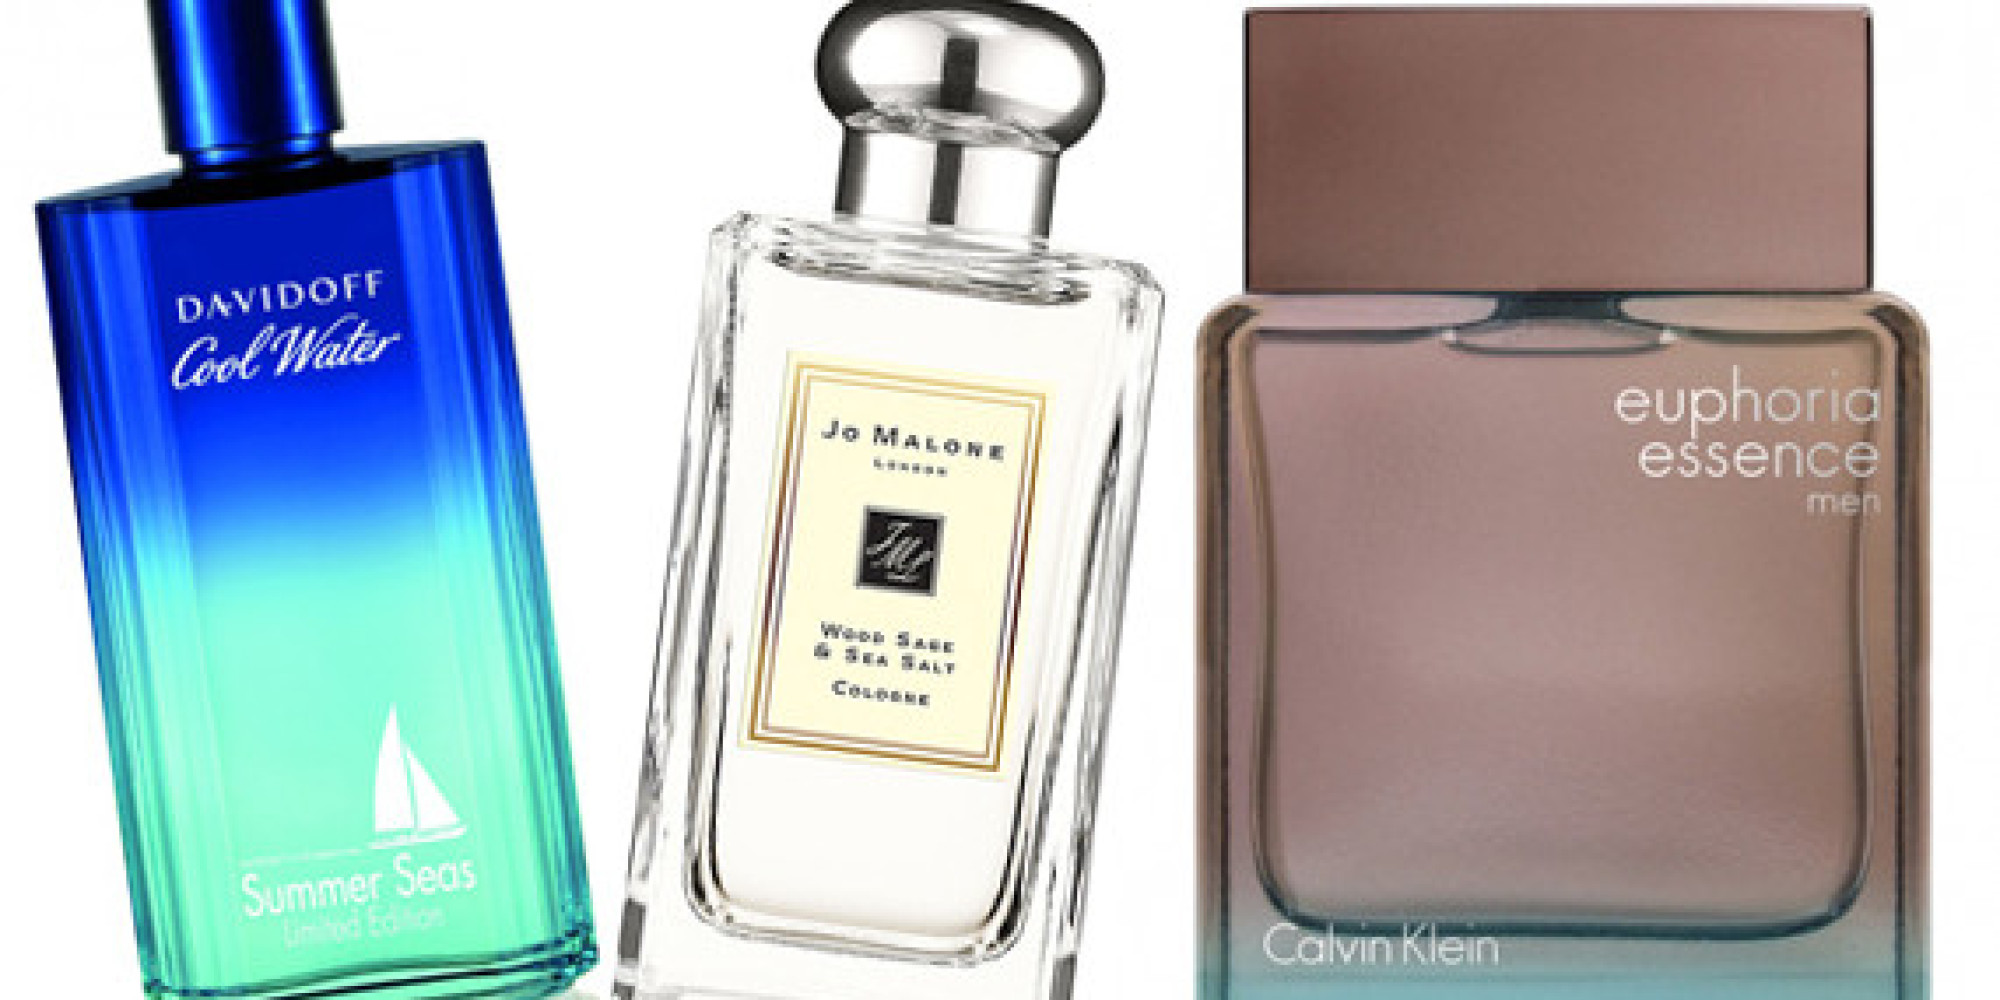 Best Men's Summer Fragrance 2015: The Scents To Suit Every ...